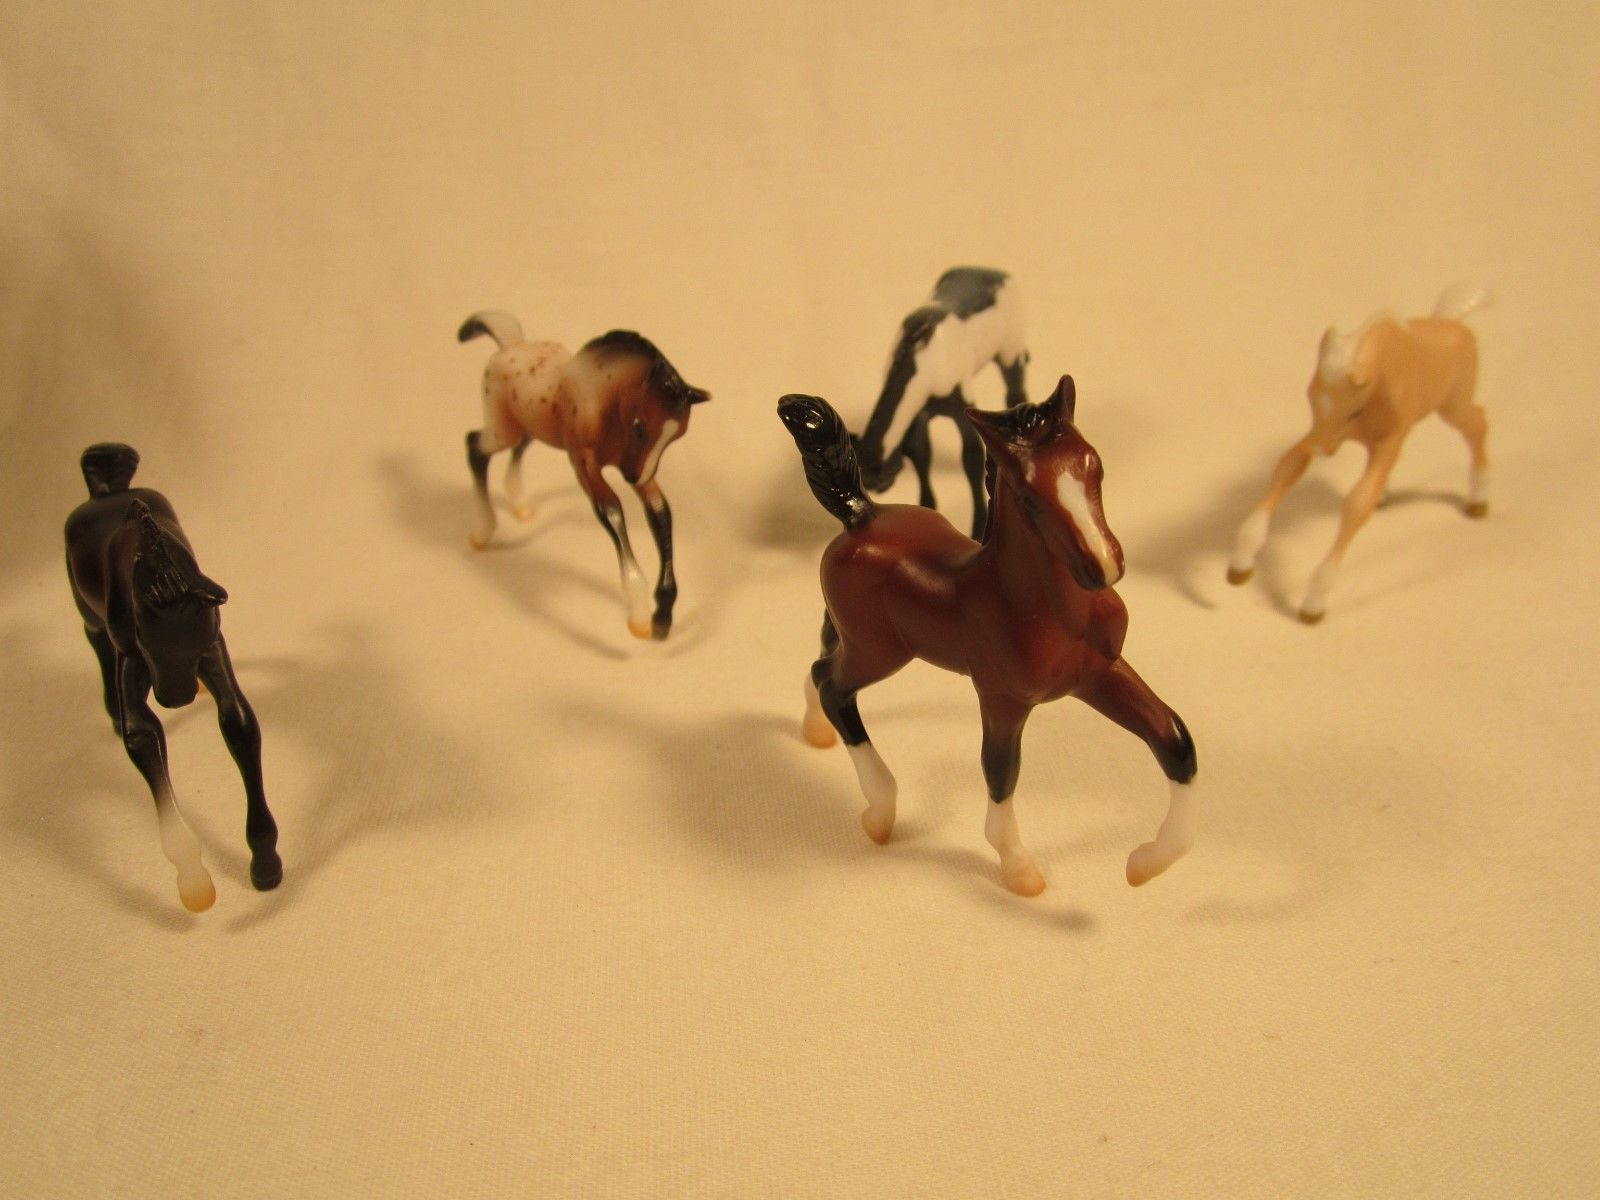 Primary image for BREYER 5 Stablemates Foals #5615/5932 5616/5883 5613/59204,5409,5602 [Z287e4d]